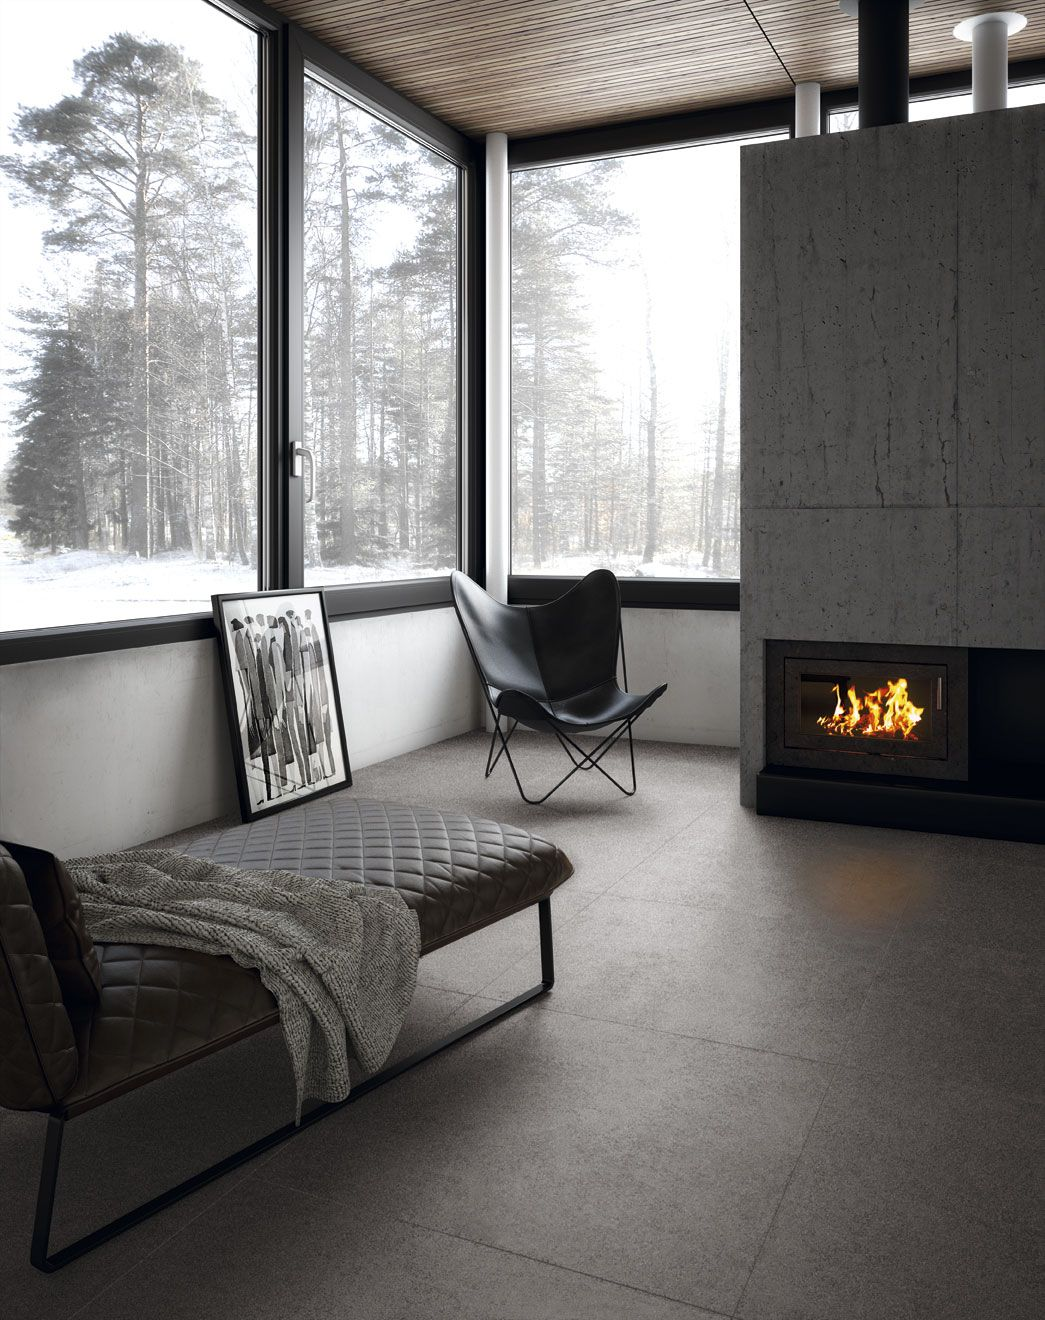 Fade Plomo Natural 100x100 Cm Combines A Cement Look With Aged